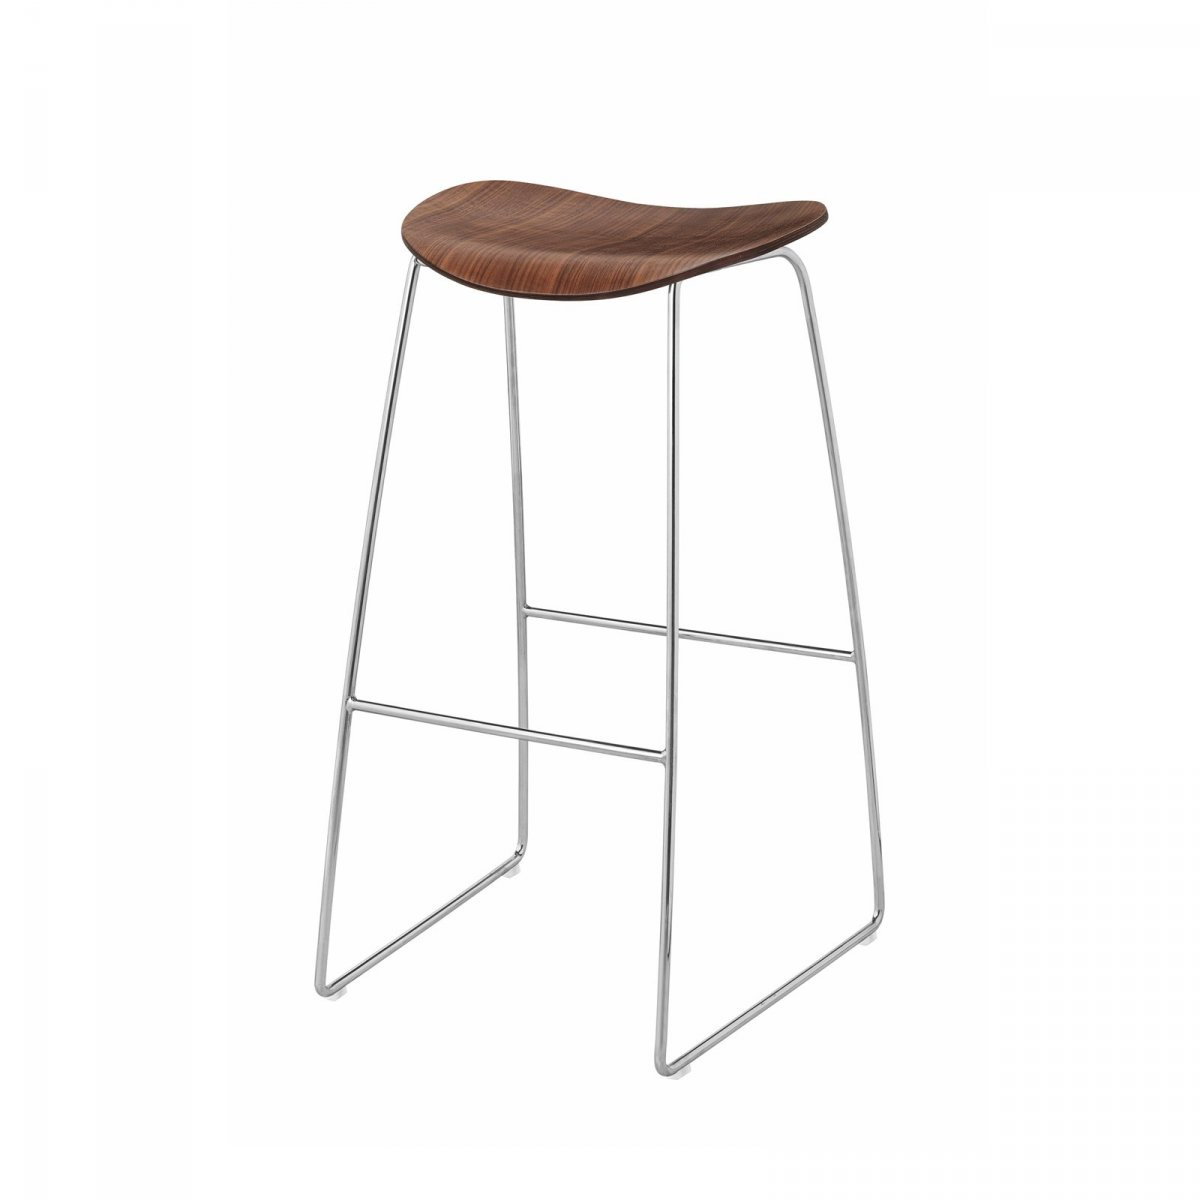 Gubi 2D Stool Sled Base, walnut + chrome.